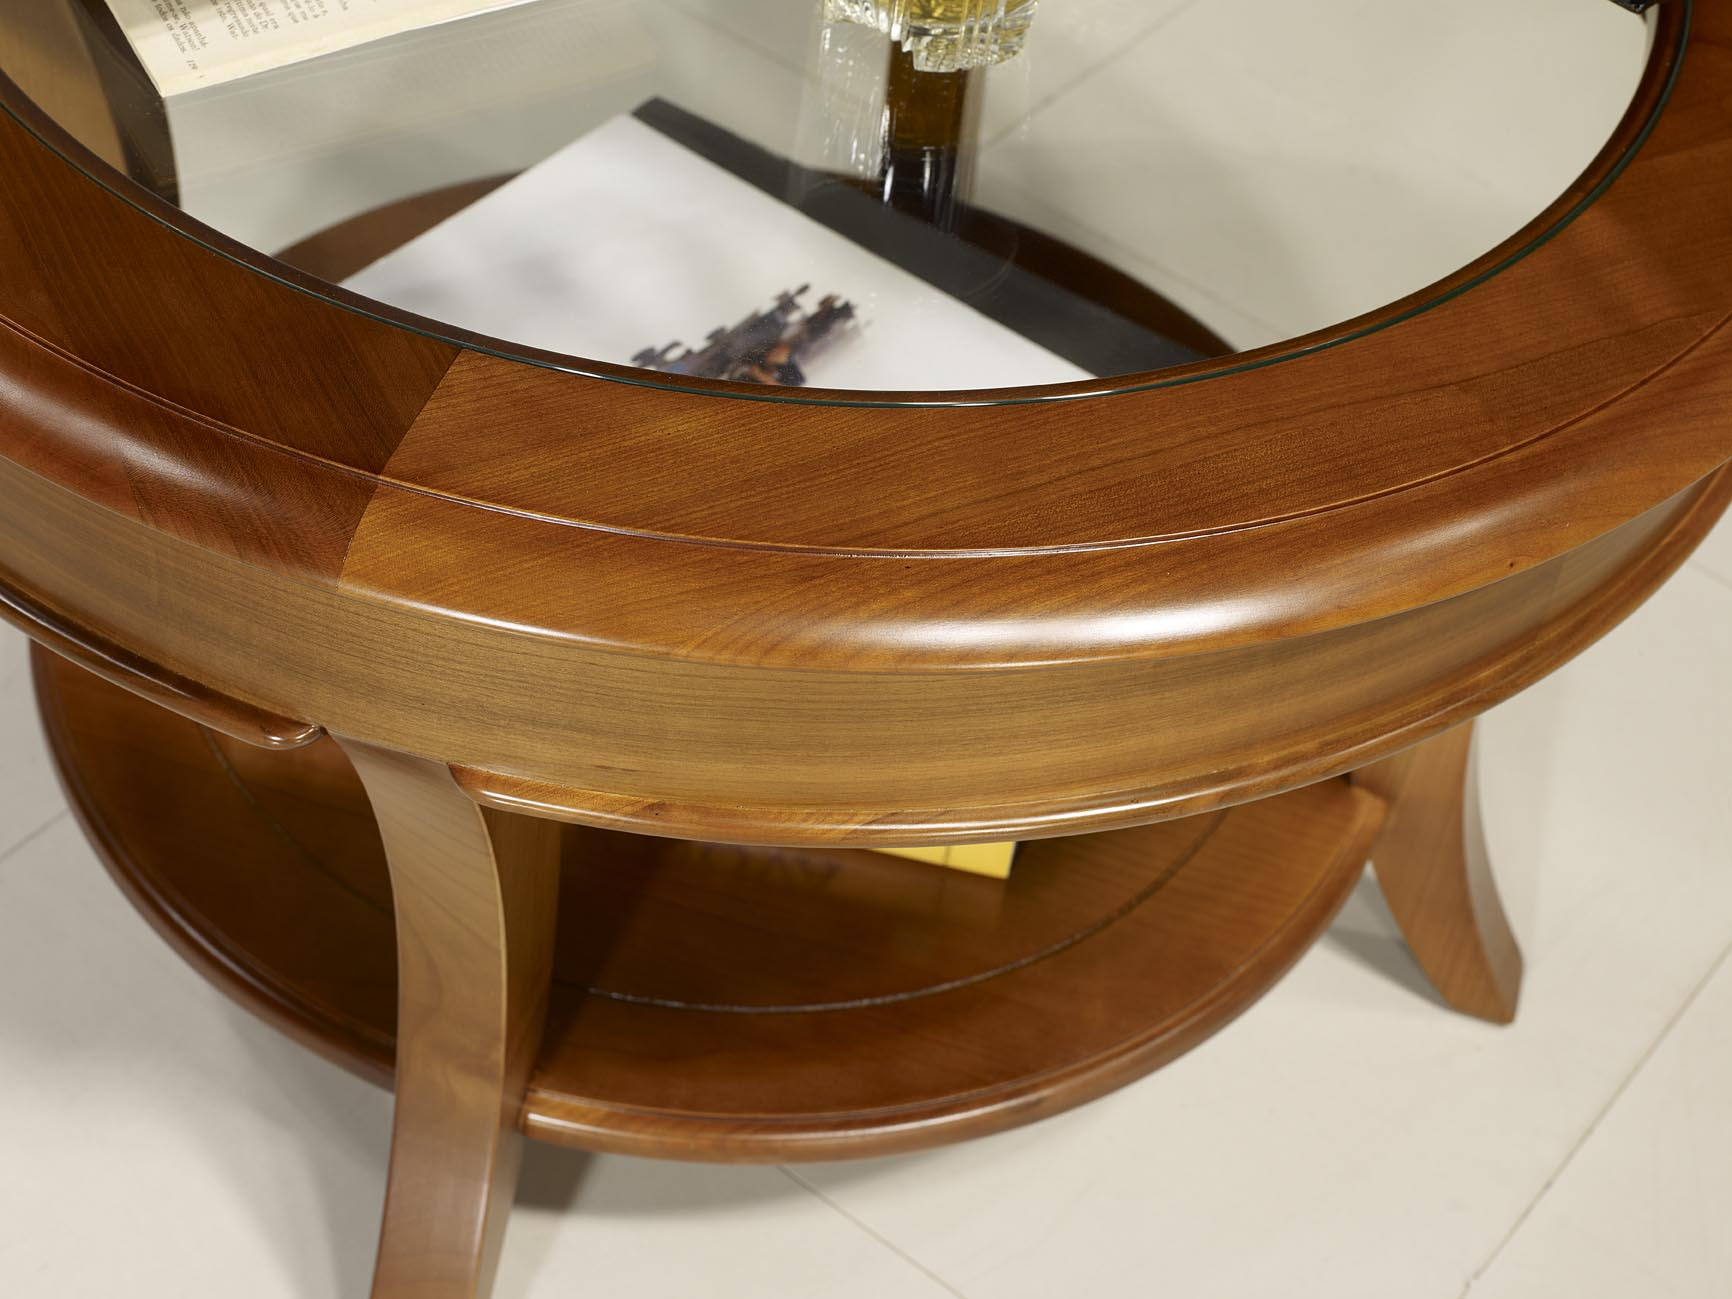 Table basse ronde merisier louis philippe mobilier for Meuble tv xxl style louis philippe en pin